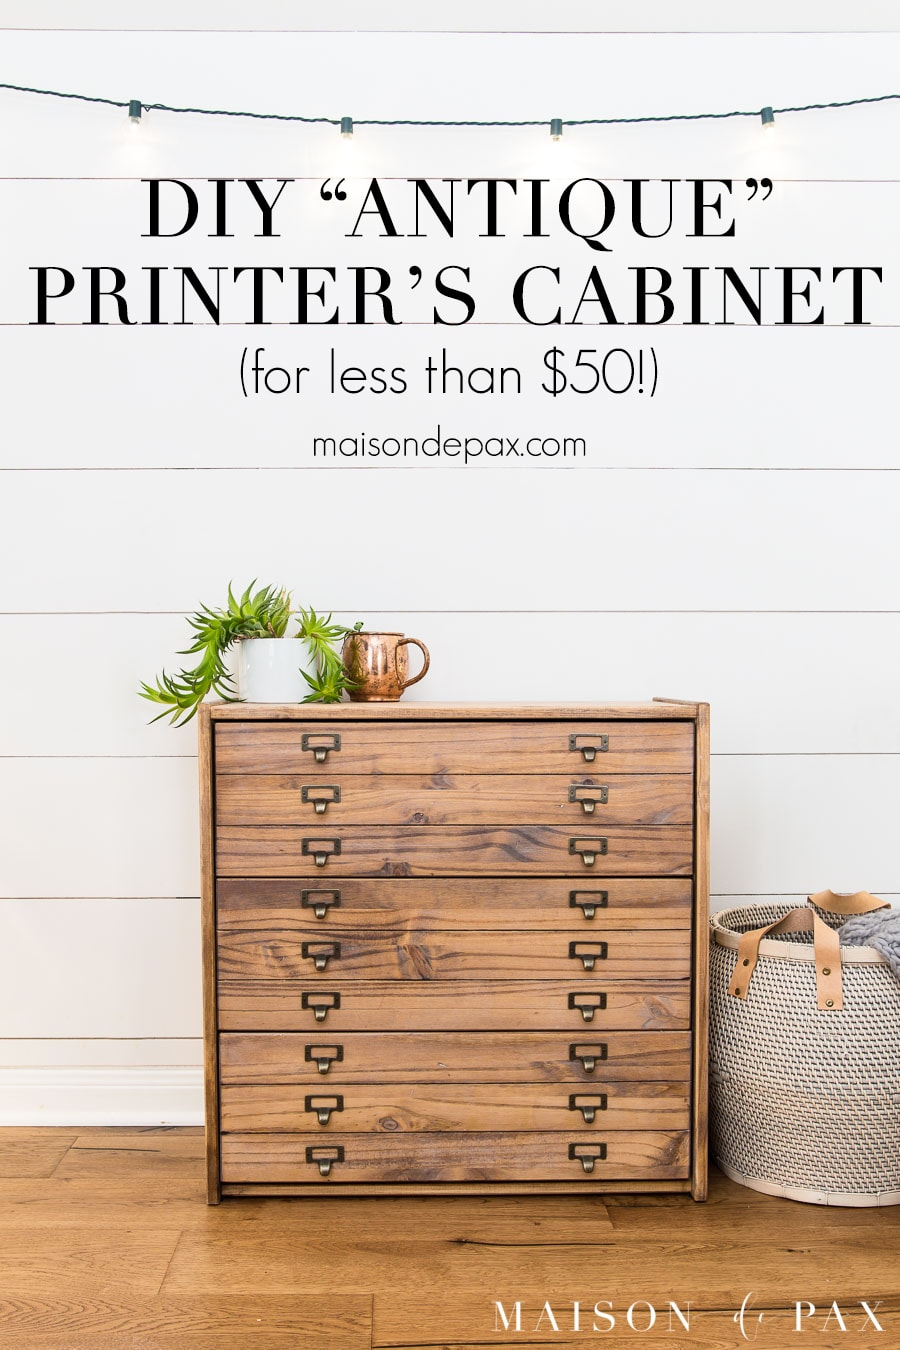 tutorial for diy printer's cabinet from an ikea rast dresser